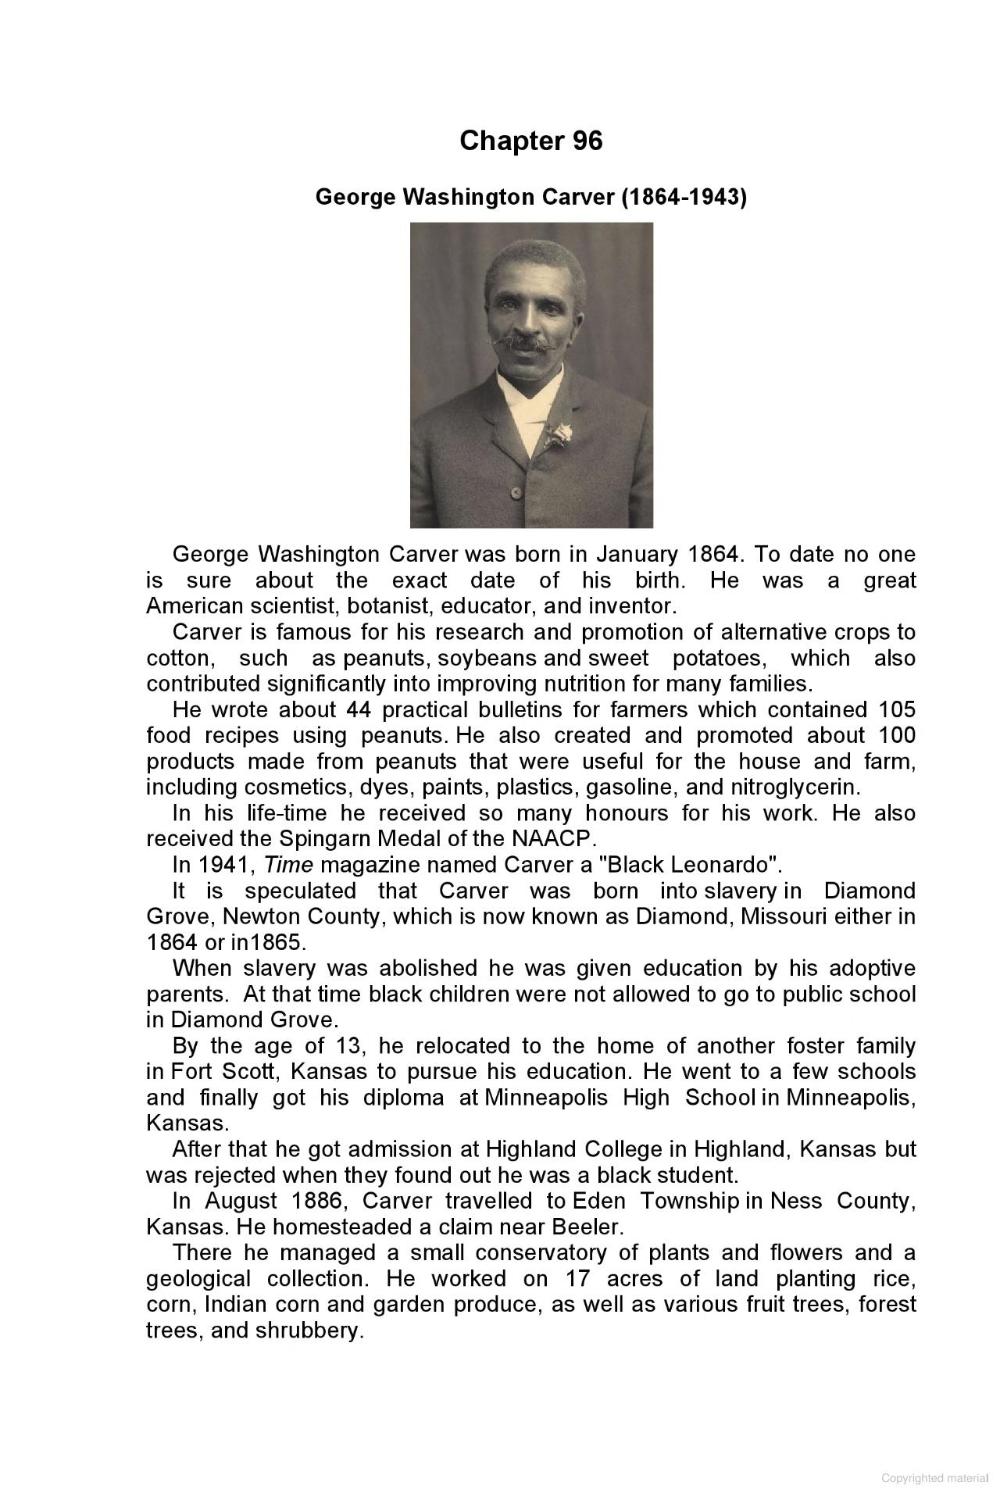 Pin On Gifted Education George Washington Carver Essay